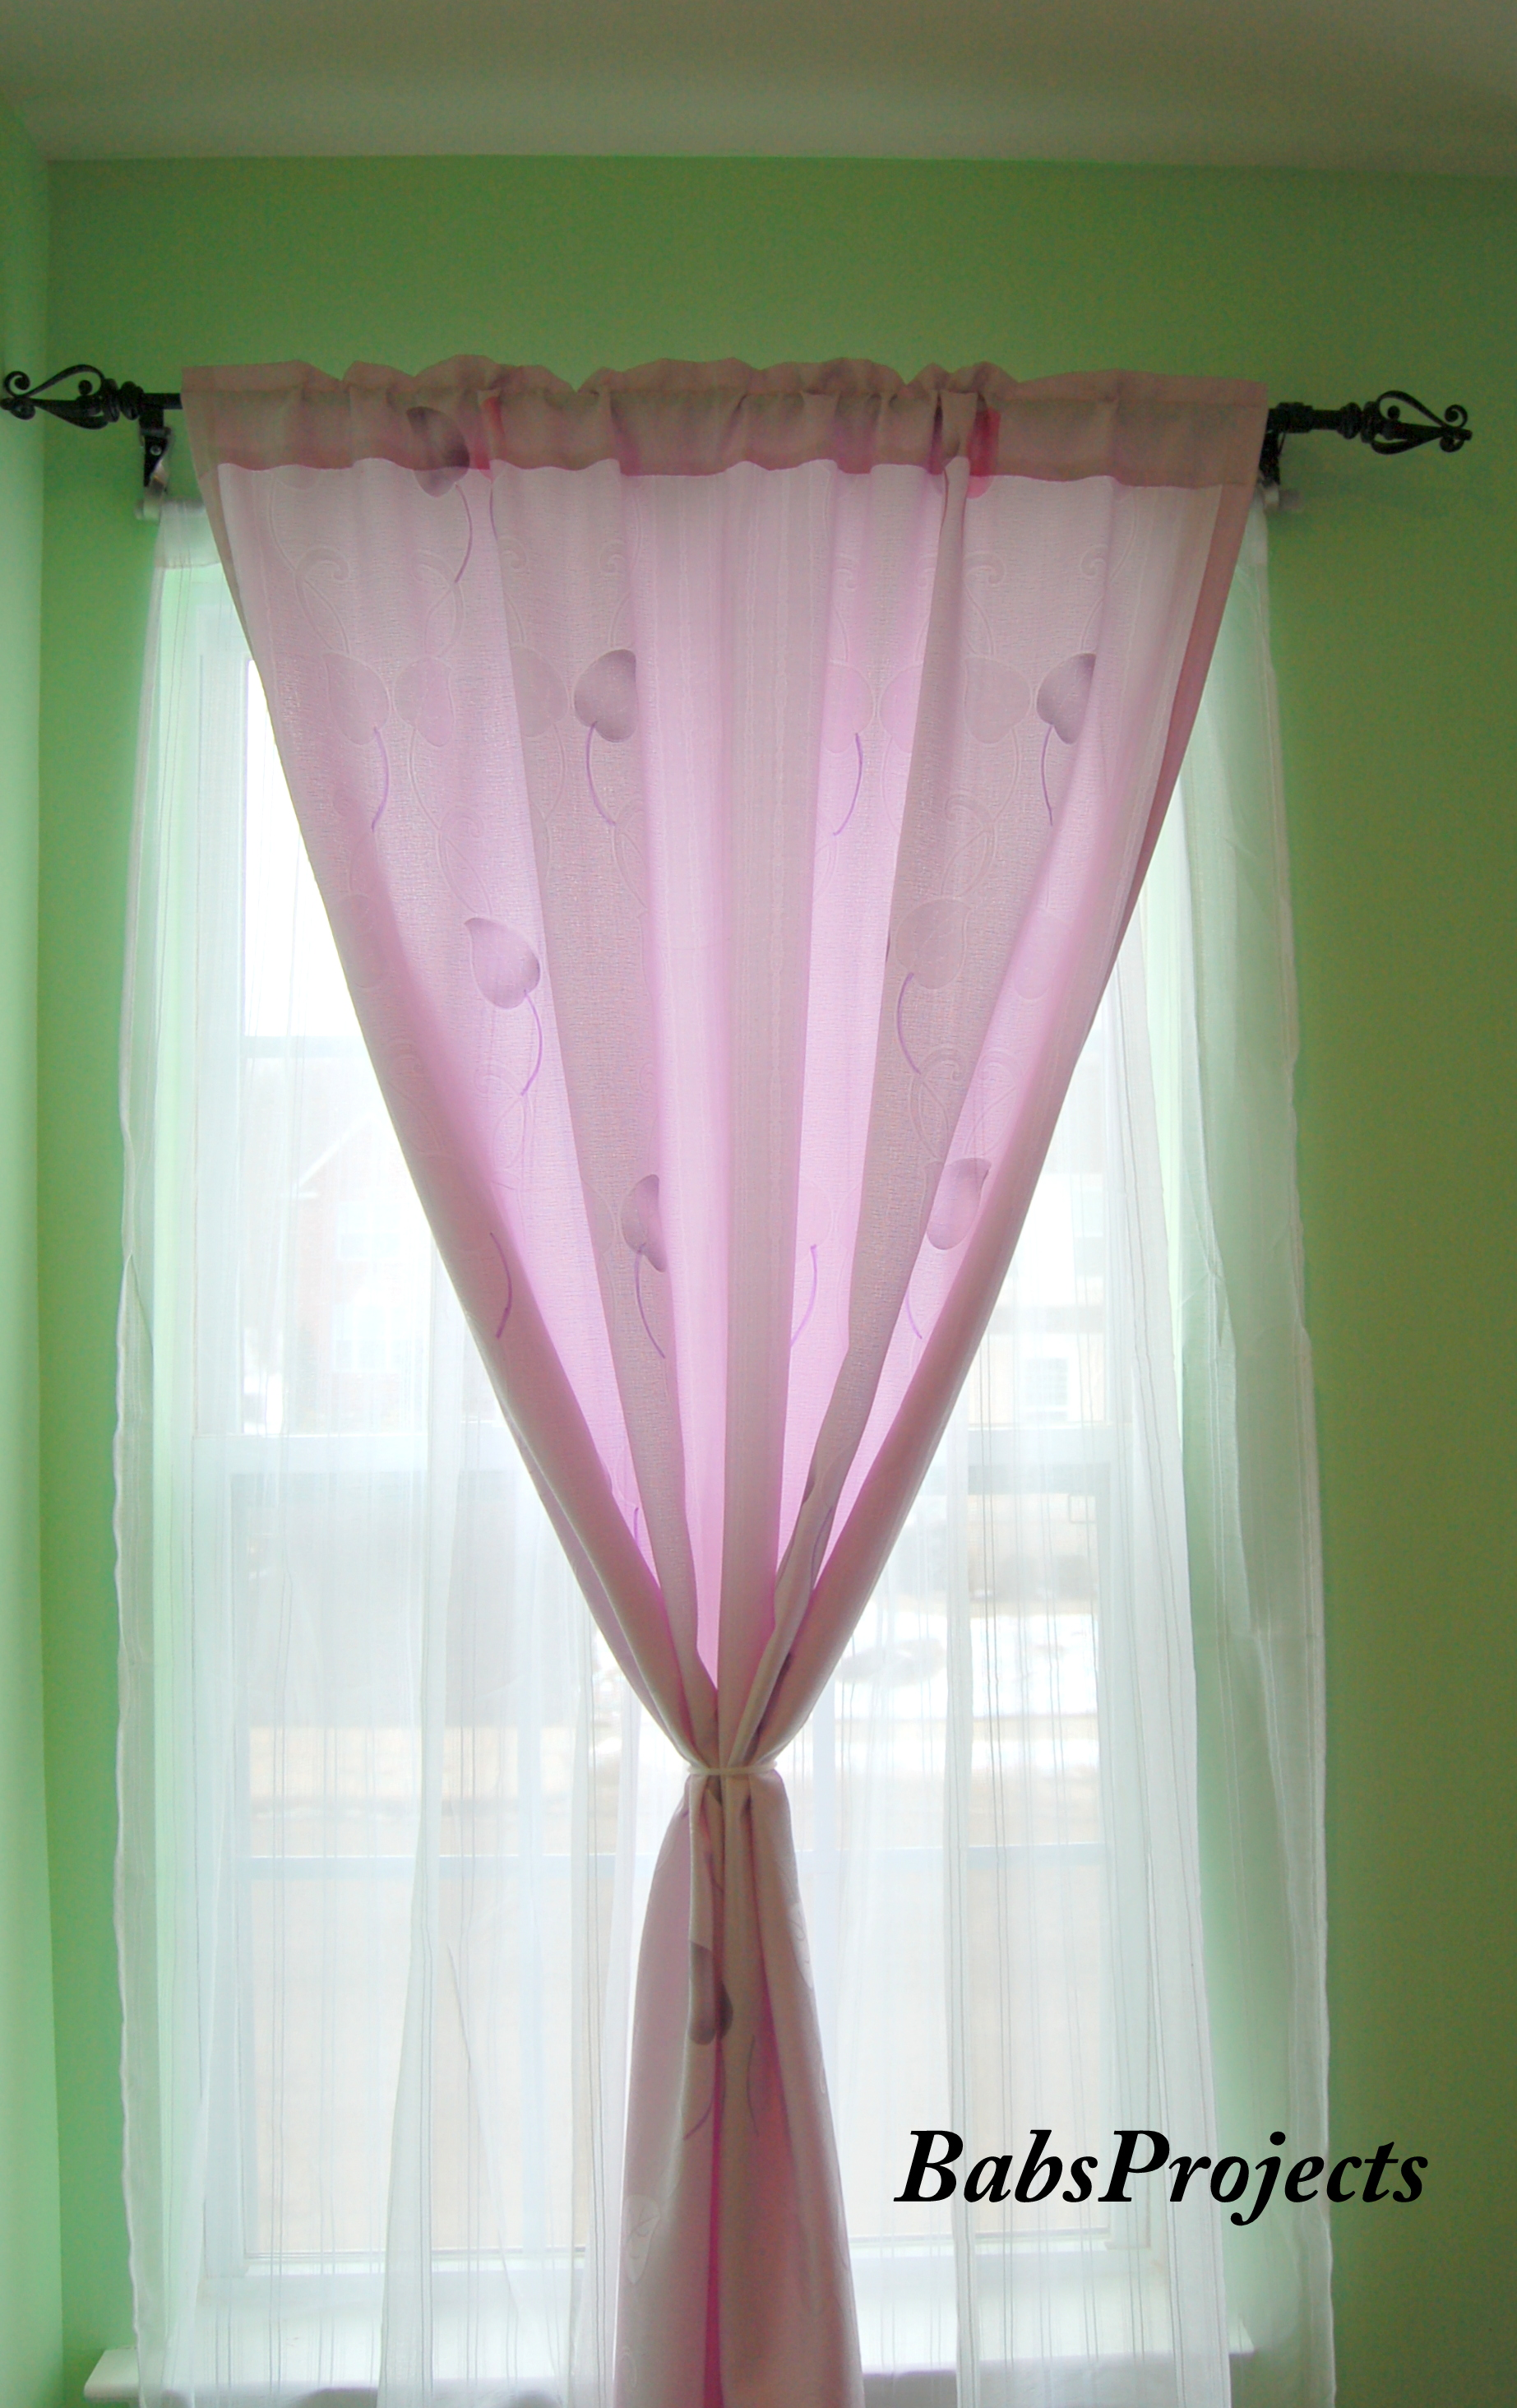 Review and Giveaway for Curtain Caddy - Babs Projects